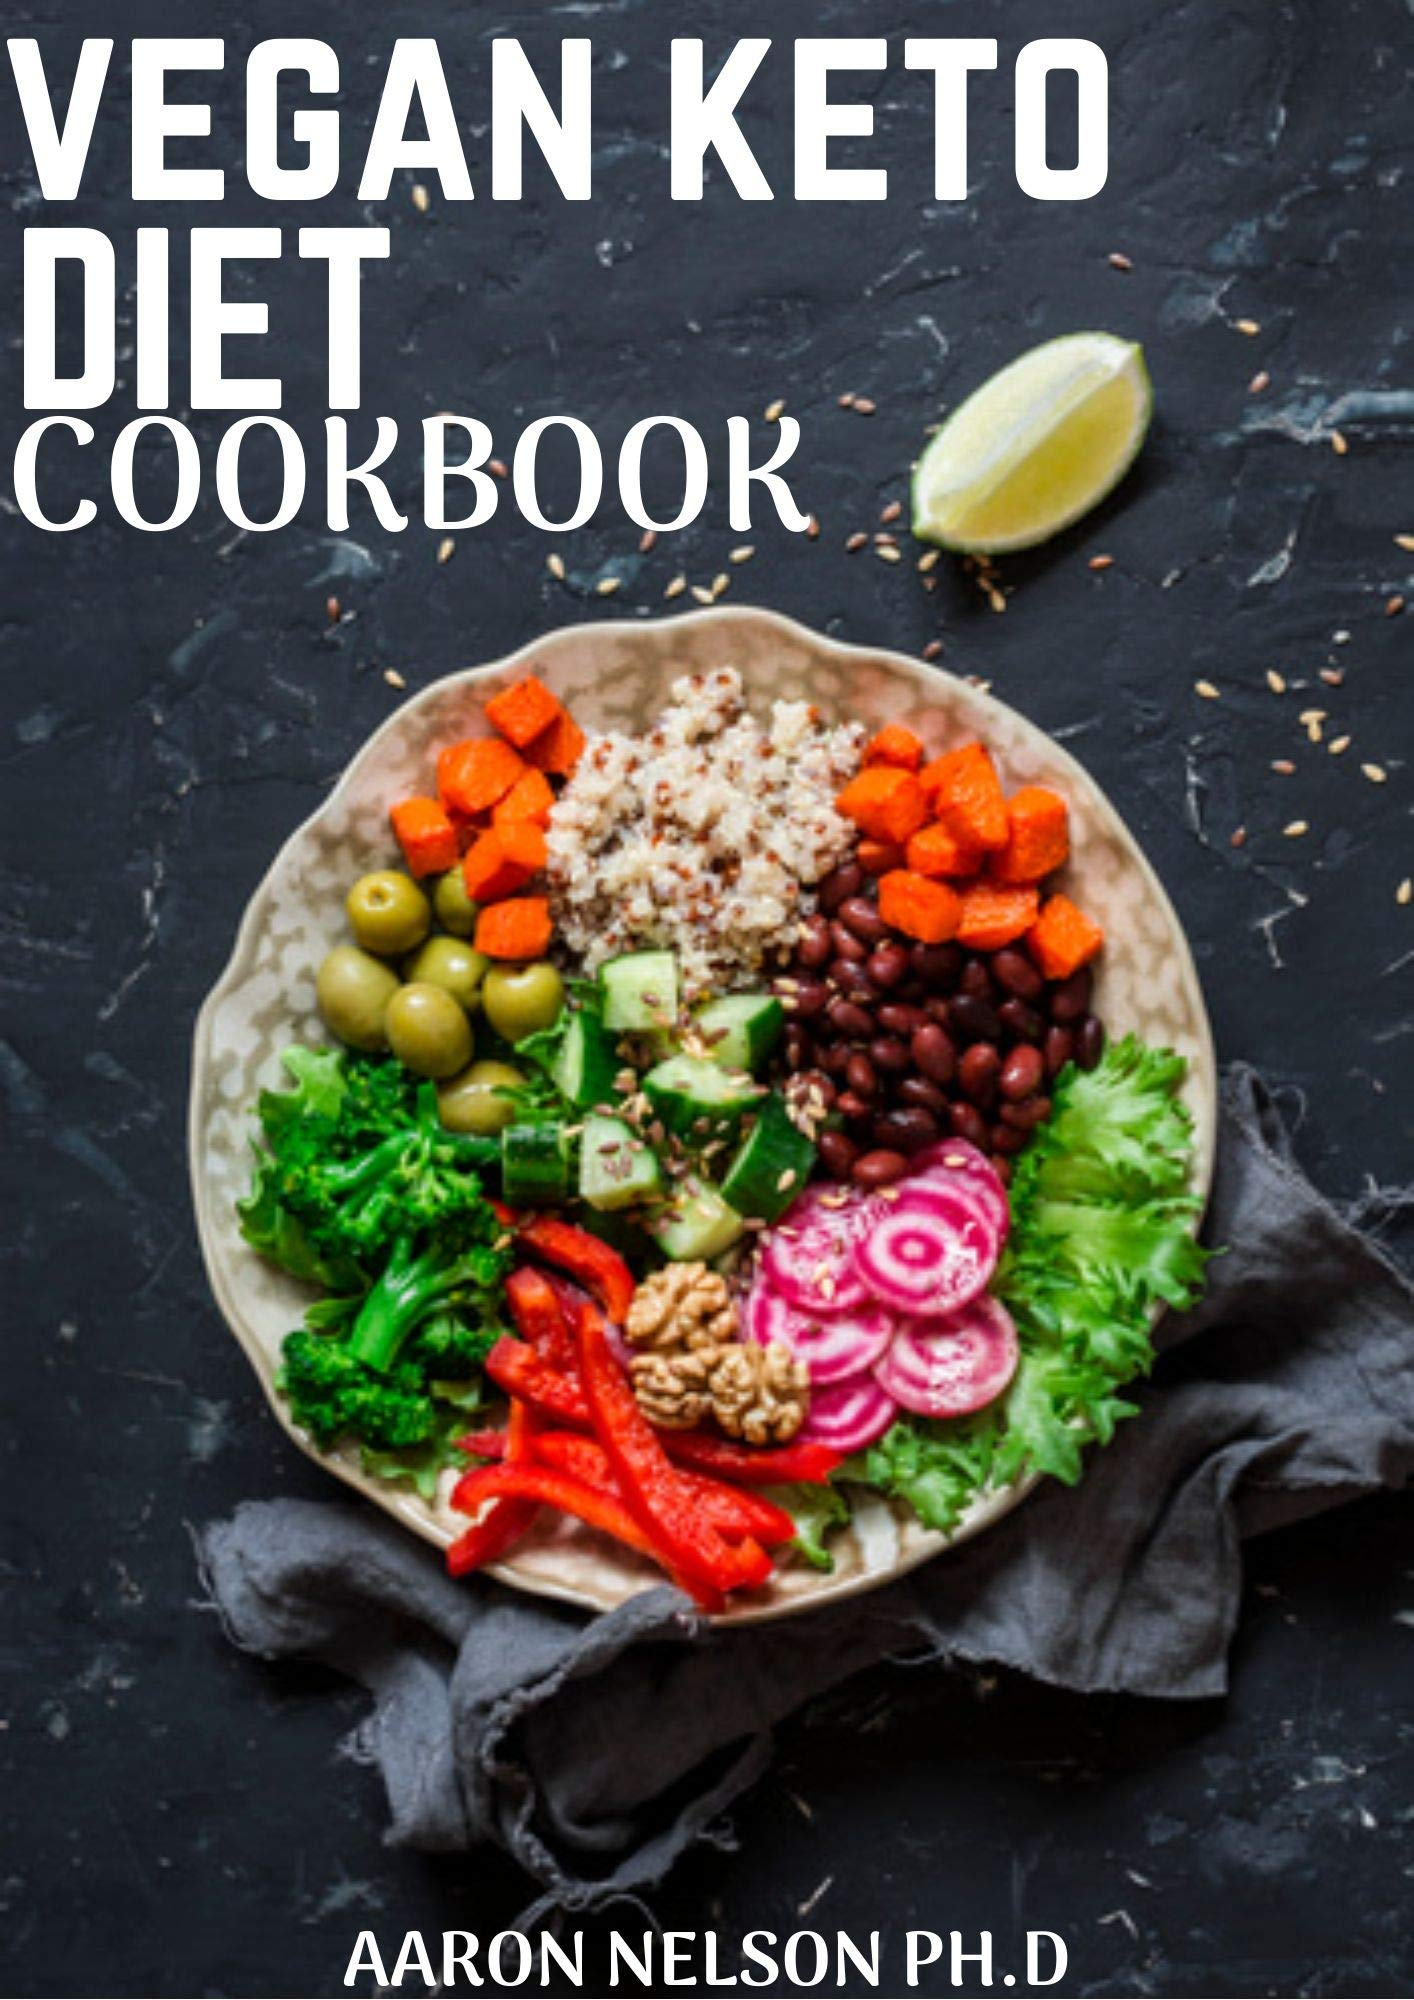 VEGAN KETO DIET COOKBOOK: NUTRITIONAL GUIDE FOR BEGINNERS WITH A KETOGENIC APPROACH, VEGAN DIET FOR A RAPID FAT LOSS AND CLEANSE YOUR BODY.